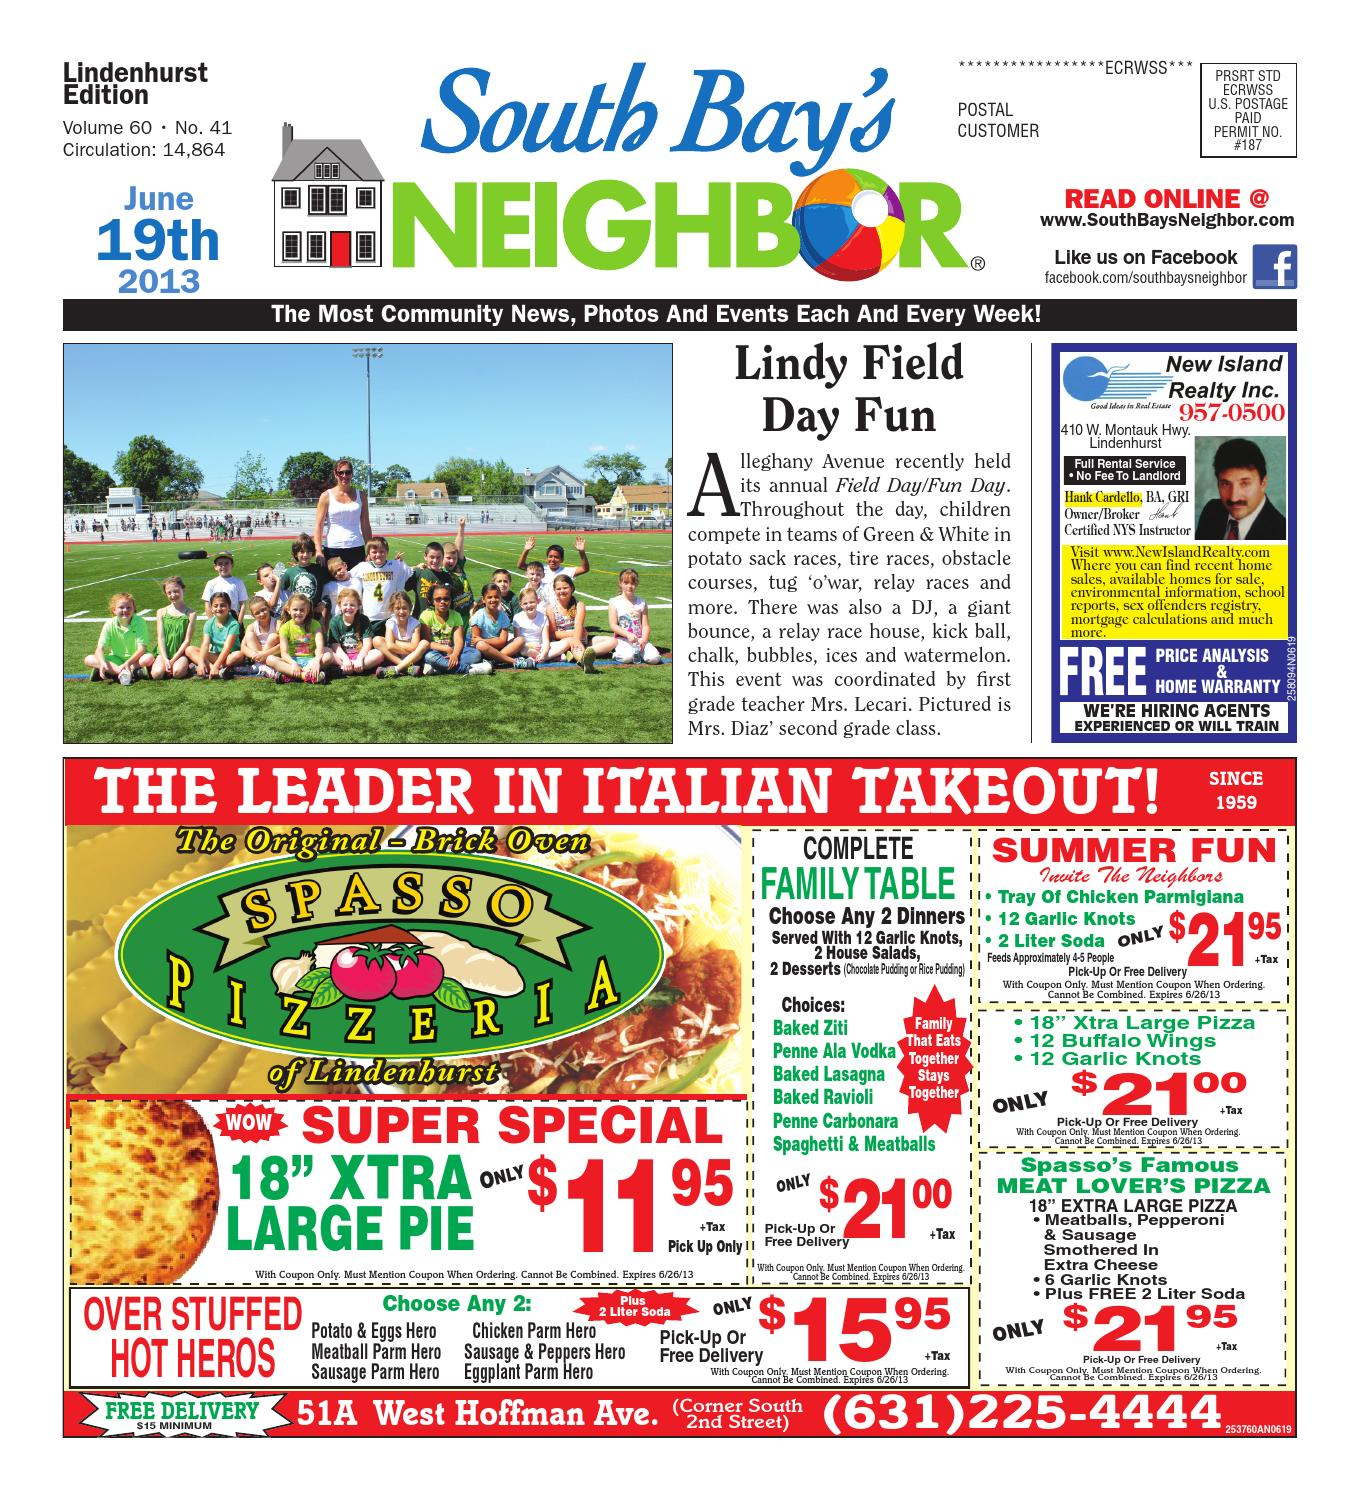 scarpe da ginnastica A basso prezzo vendite speciali June 19, 2013 Lindenhurst by South Bay's Neighbor Newspapers ...